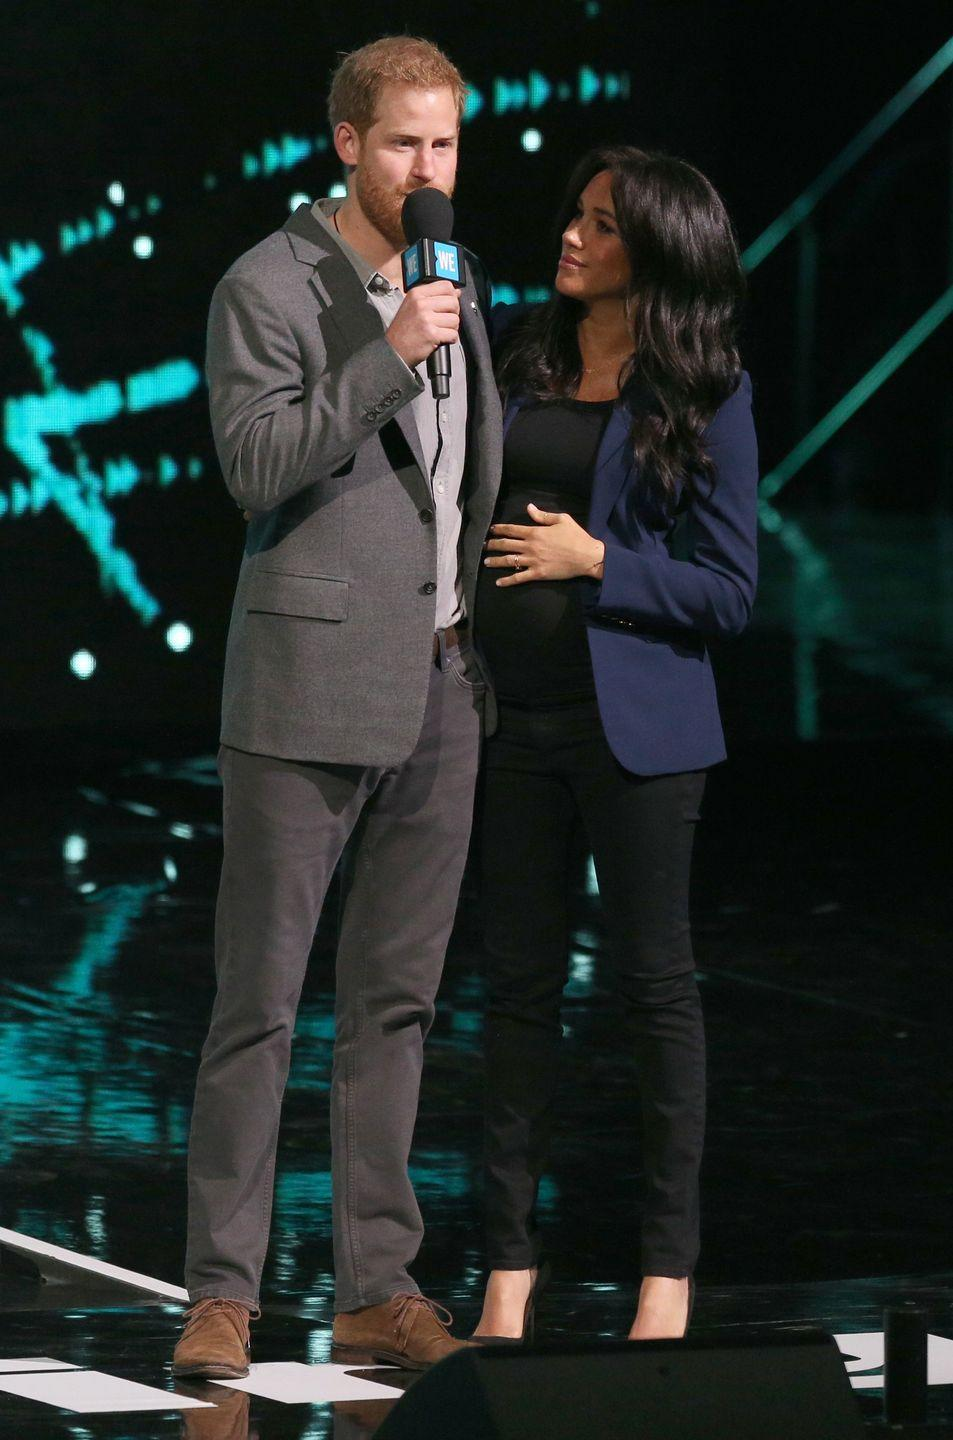 """<p>Meghan surprised crowds by appearing on stage with <a href=""""https://www.townandcountrymag.com/society/tradition/a26708102/prince-harry-we-day-speech-transcript-2019/"""" rel=""""nofollow noopener"""" target=""""_blank"""" data-ylk=""""slk:Prince Harry during his WE Day speech"""" class=""""link rapid-noclick-resp"""">Prince Harry during his WE Day speech</a>. For the event, she wore a navy blazer over a black top, paired by black denim and pumps.</p>"""